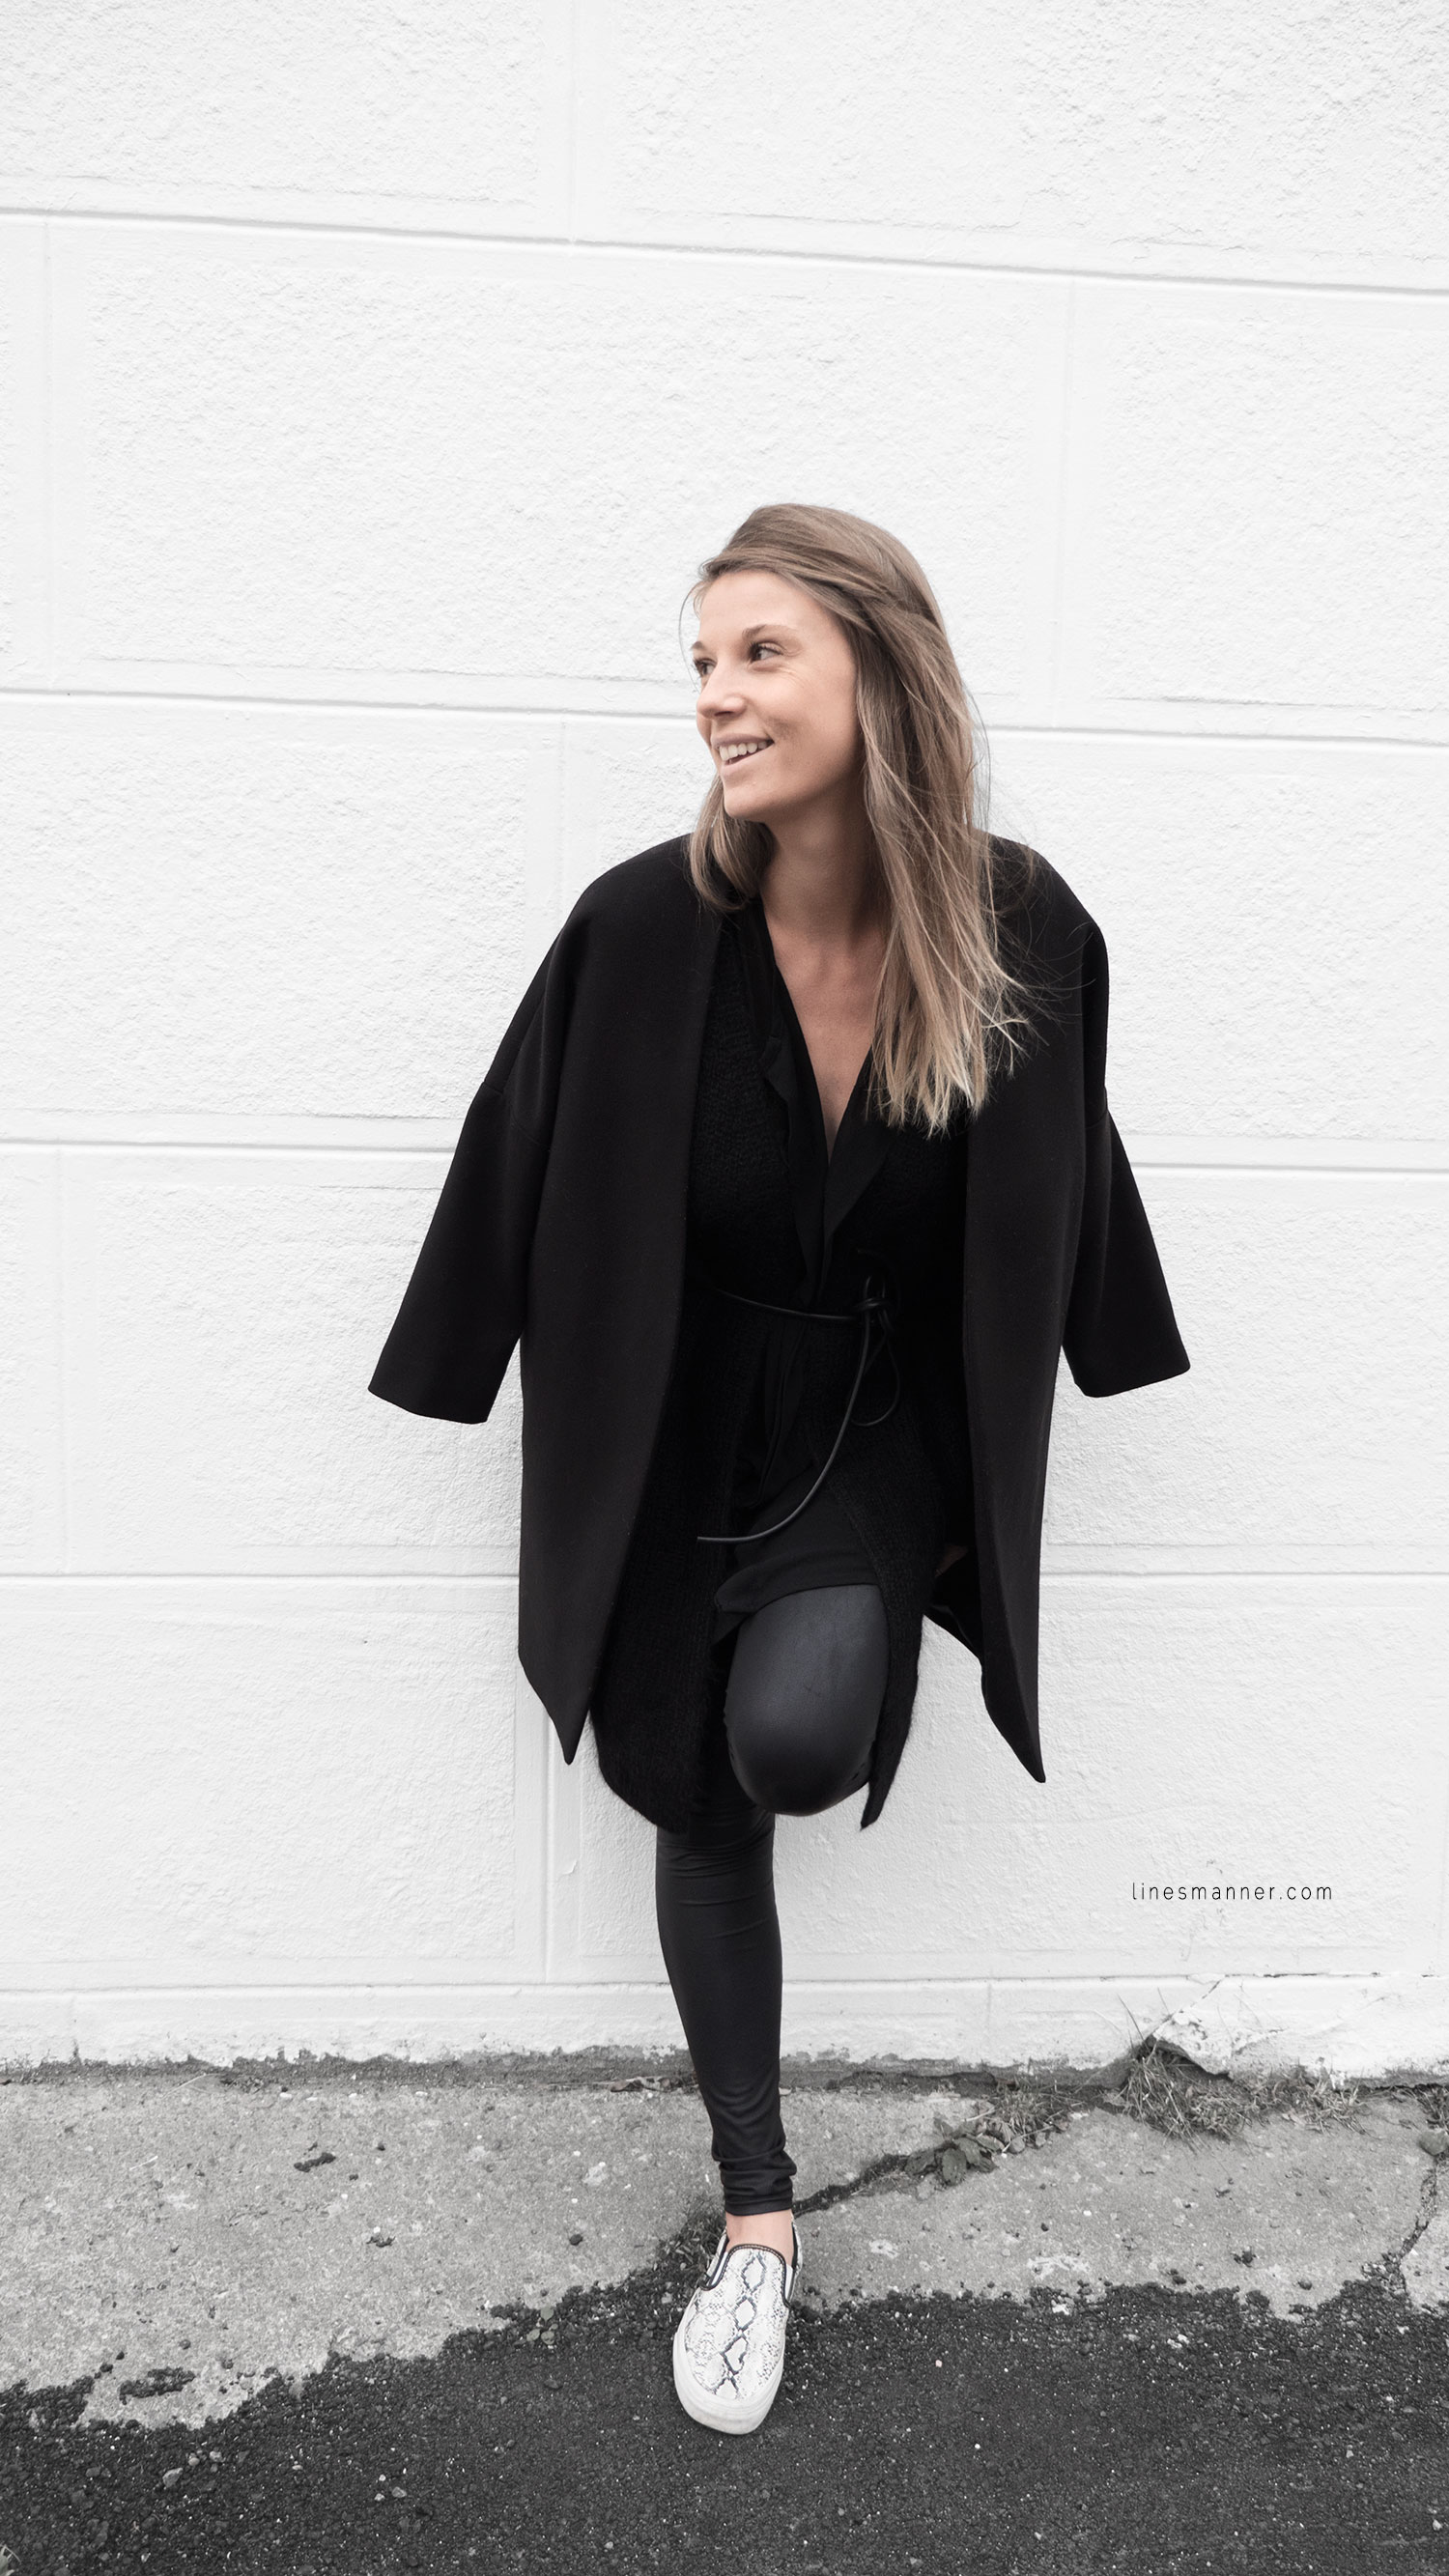 Lines-Manner-Timeless-Comfort-Essentials-Monochrome-Trend-Minimal-Textures-Oversized-Warm-Fall-Leather-Details-Simplicity-Modern-Basics-Outfit-Structure-7